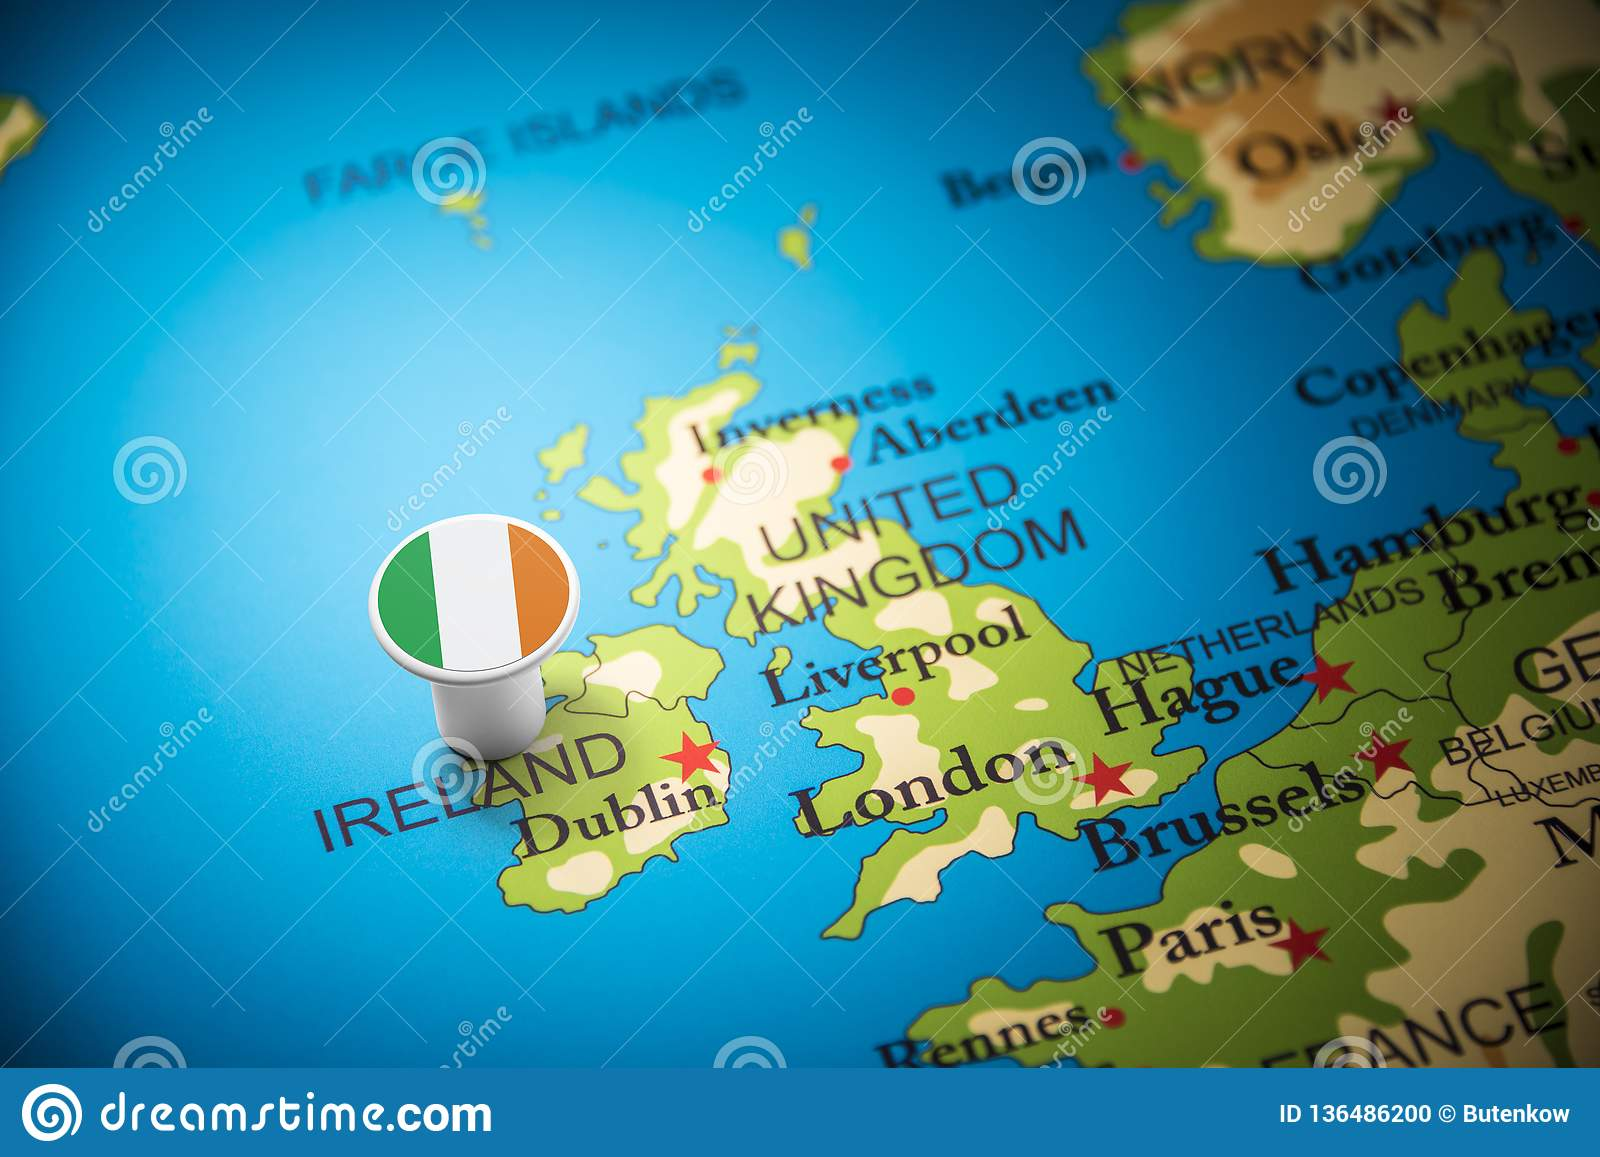 Ireland Marked With A Flag On The Map Stock Photo - Image of ...